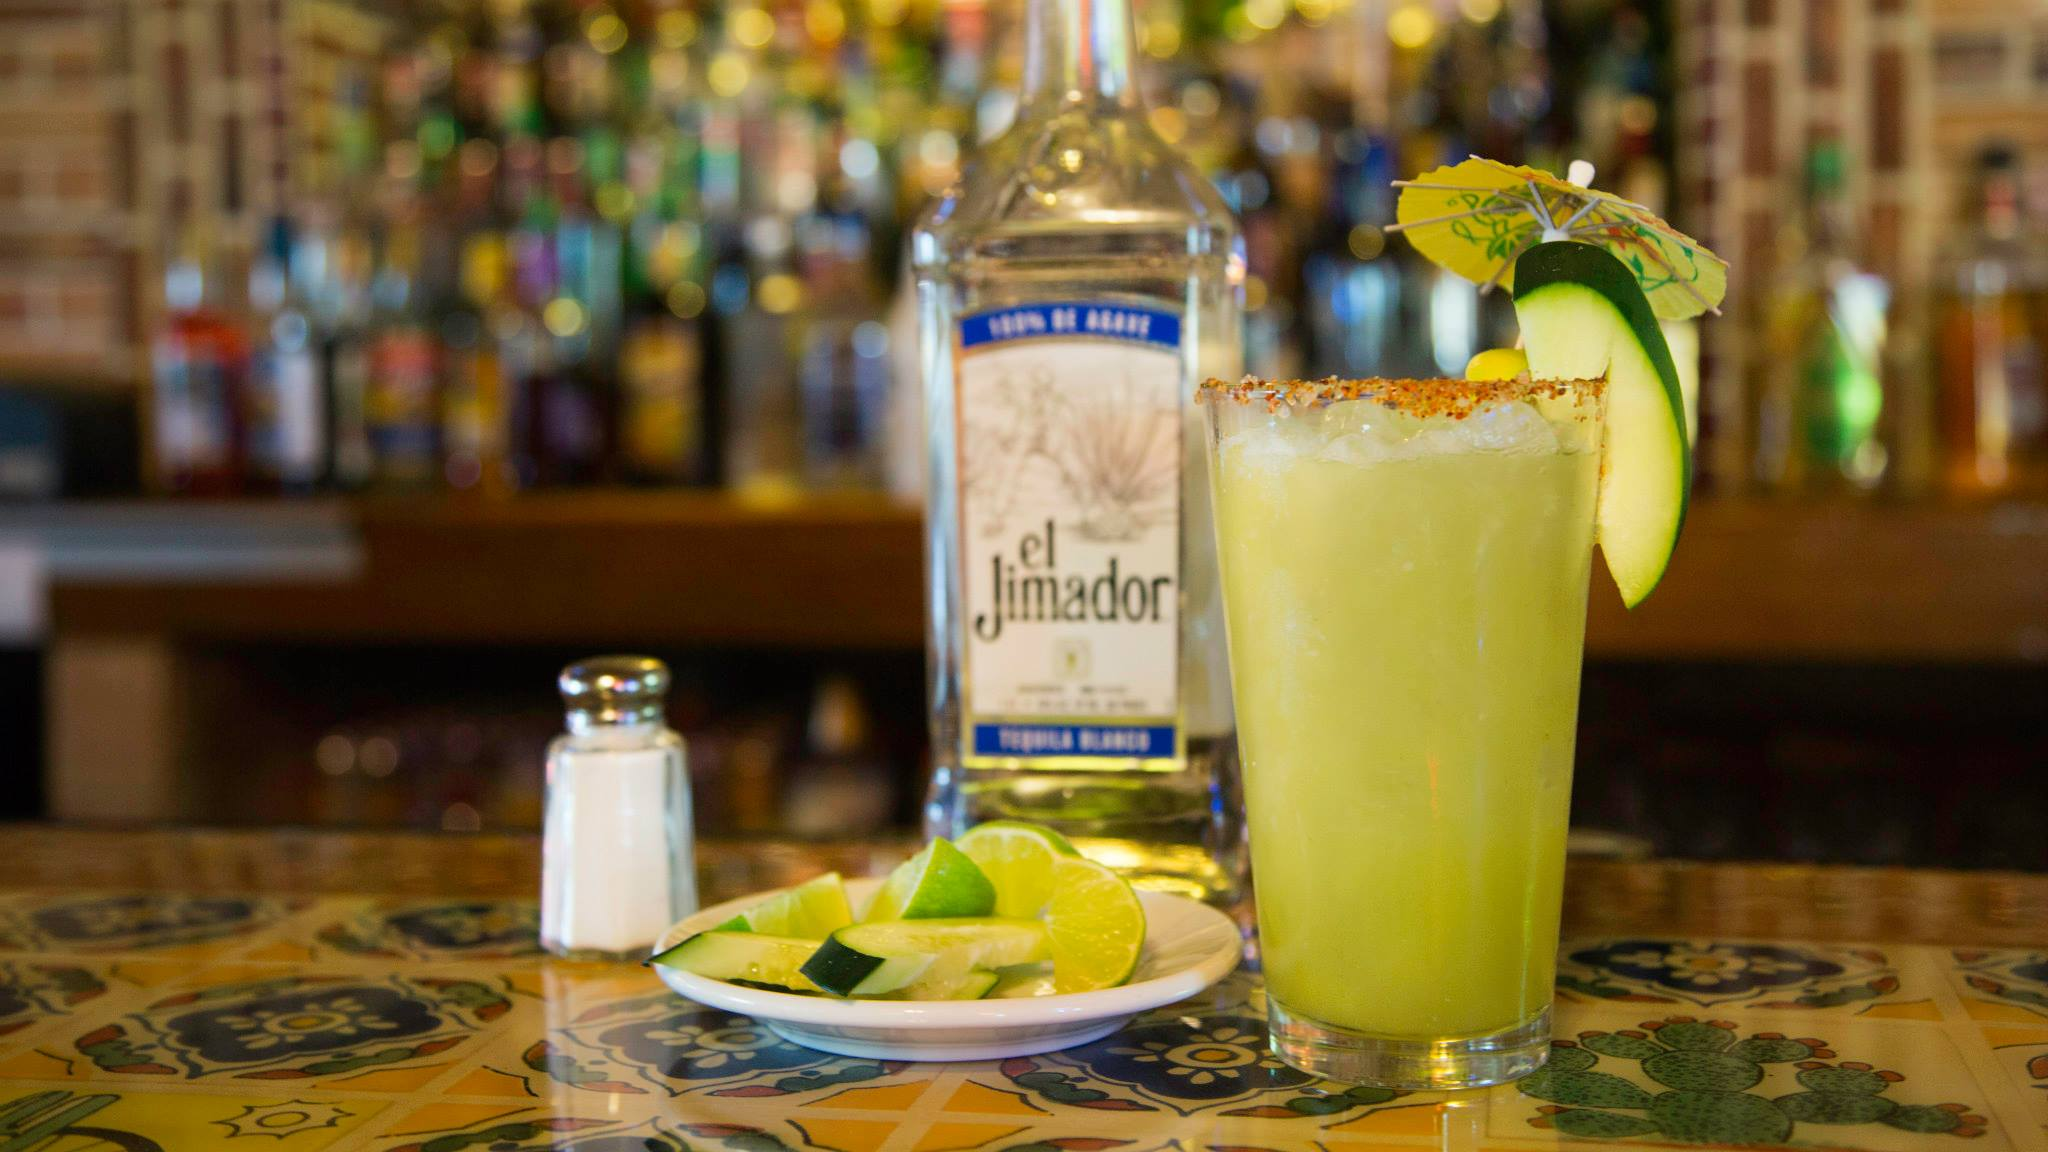 margarita in a tall glass with limes and a bottle of tequila